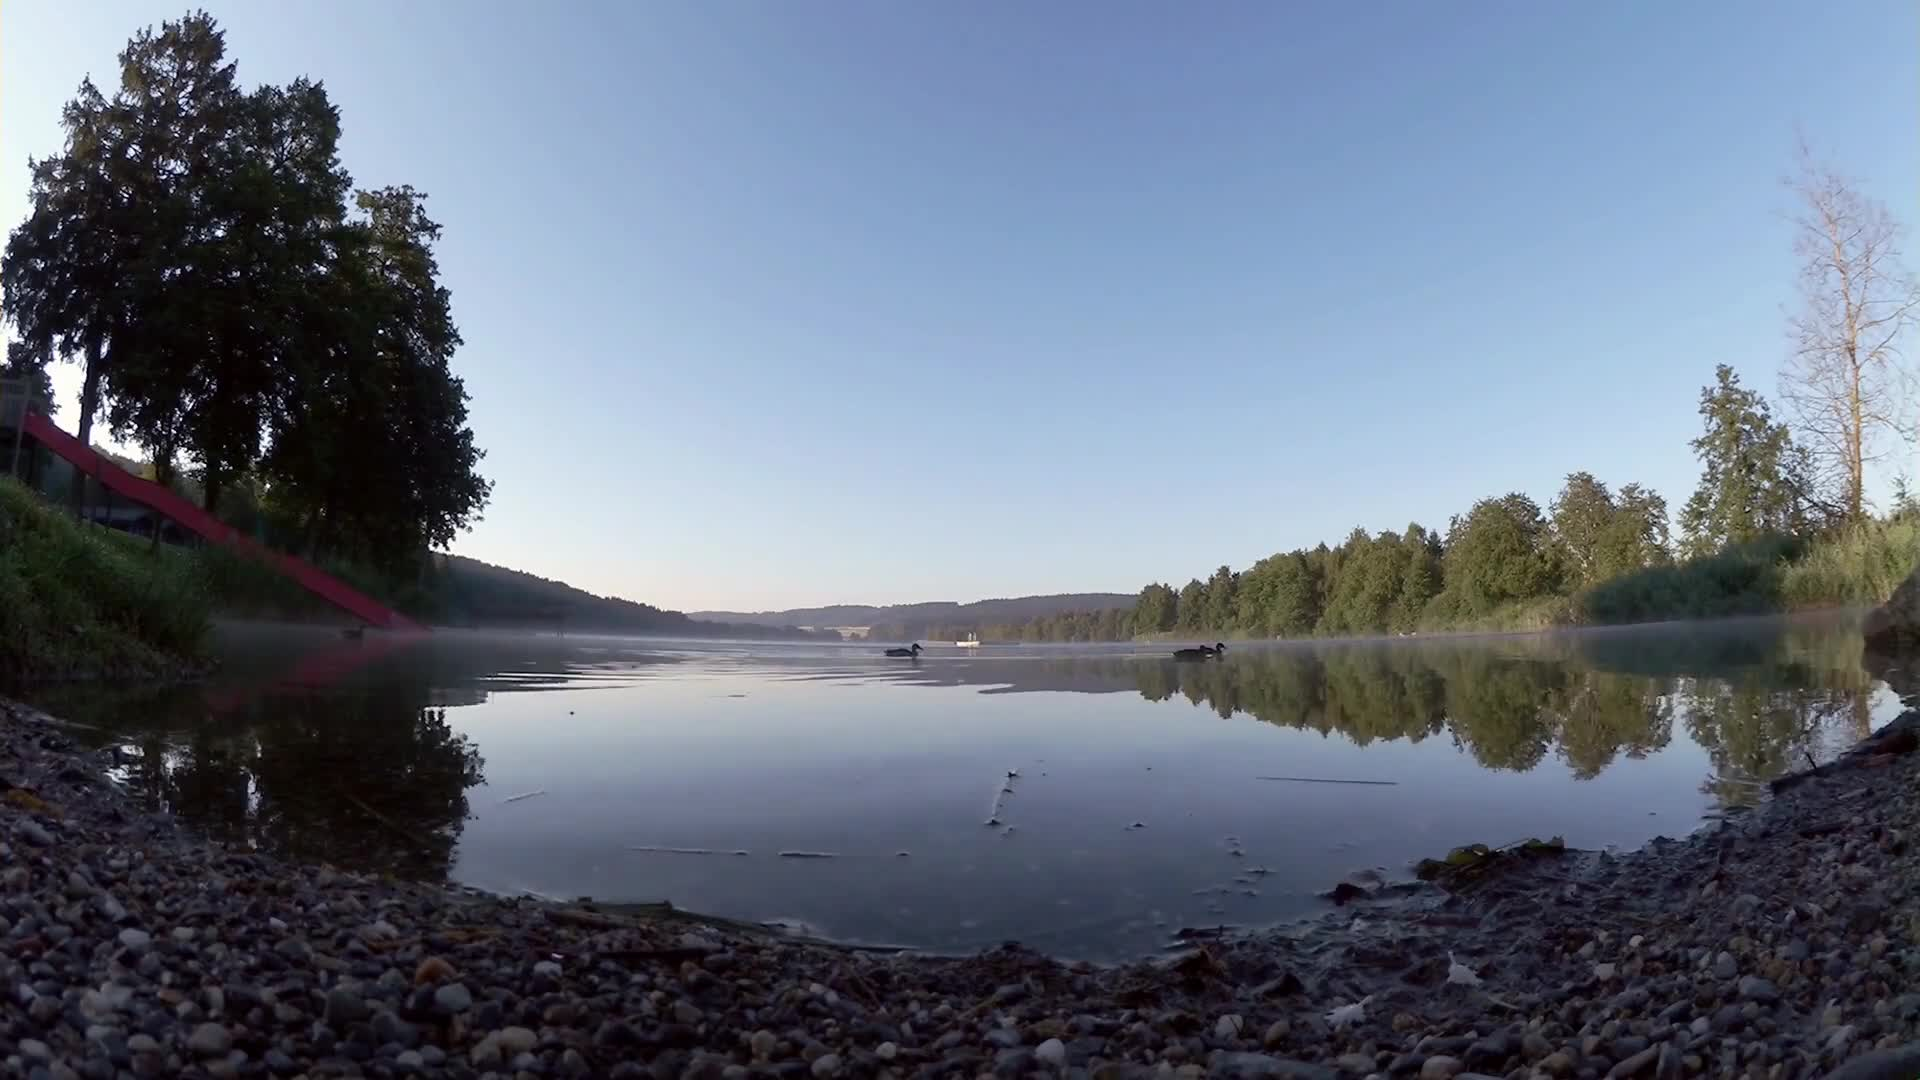 Time lapse video of a lake